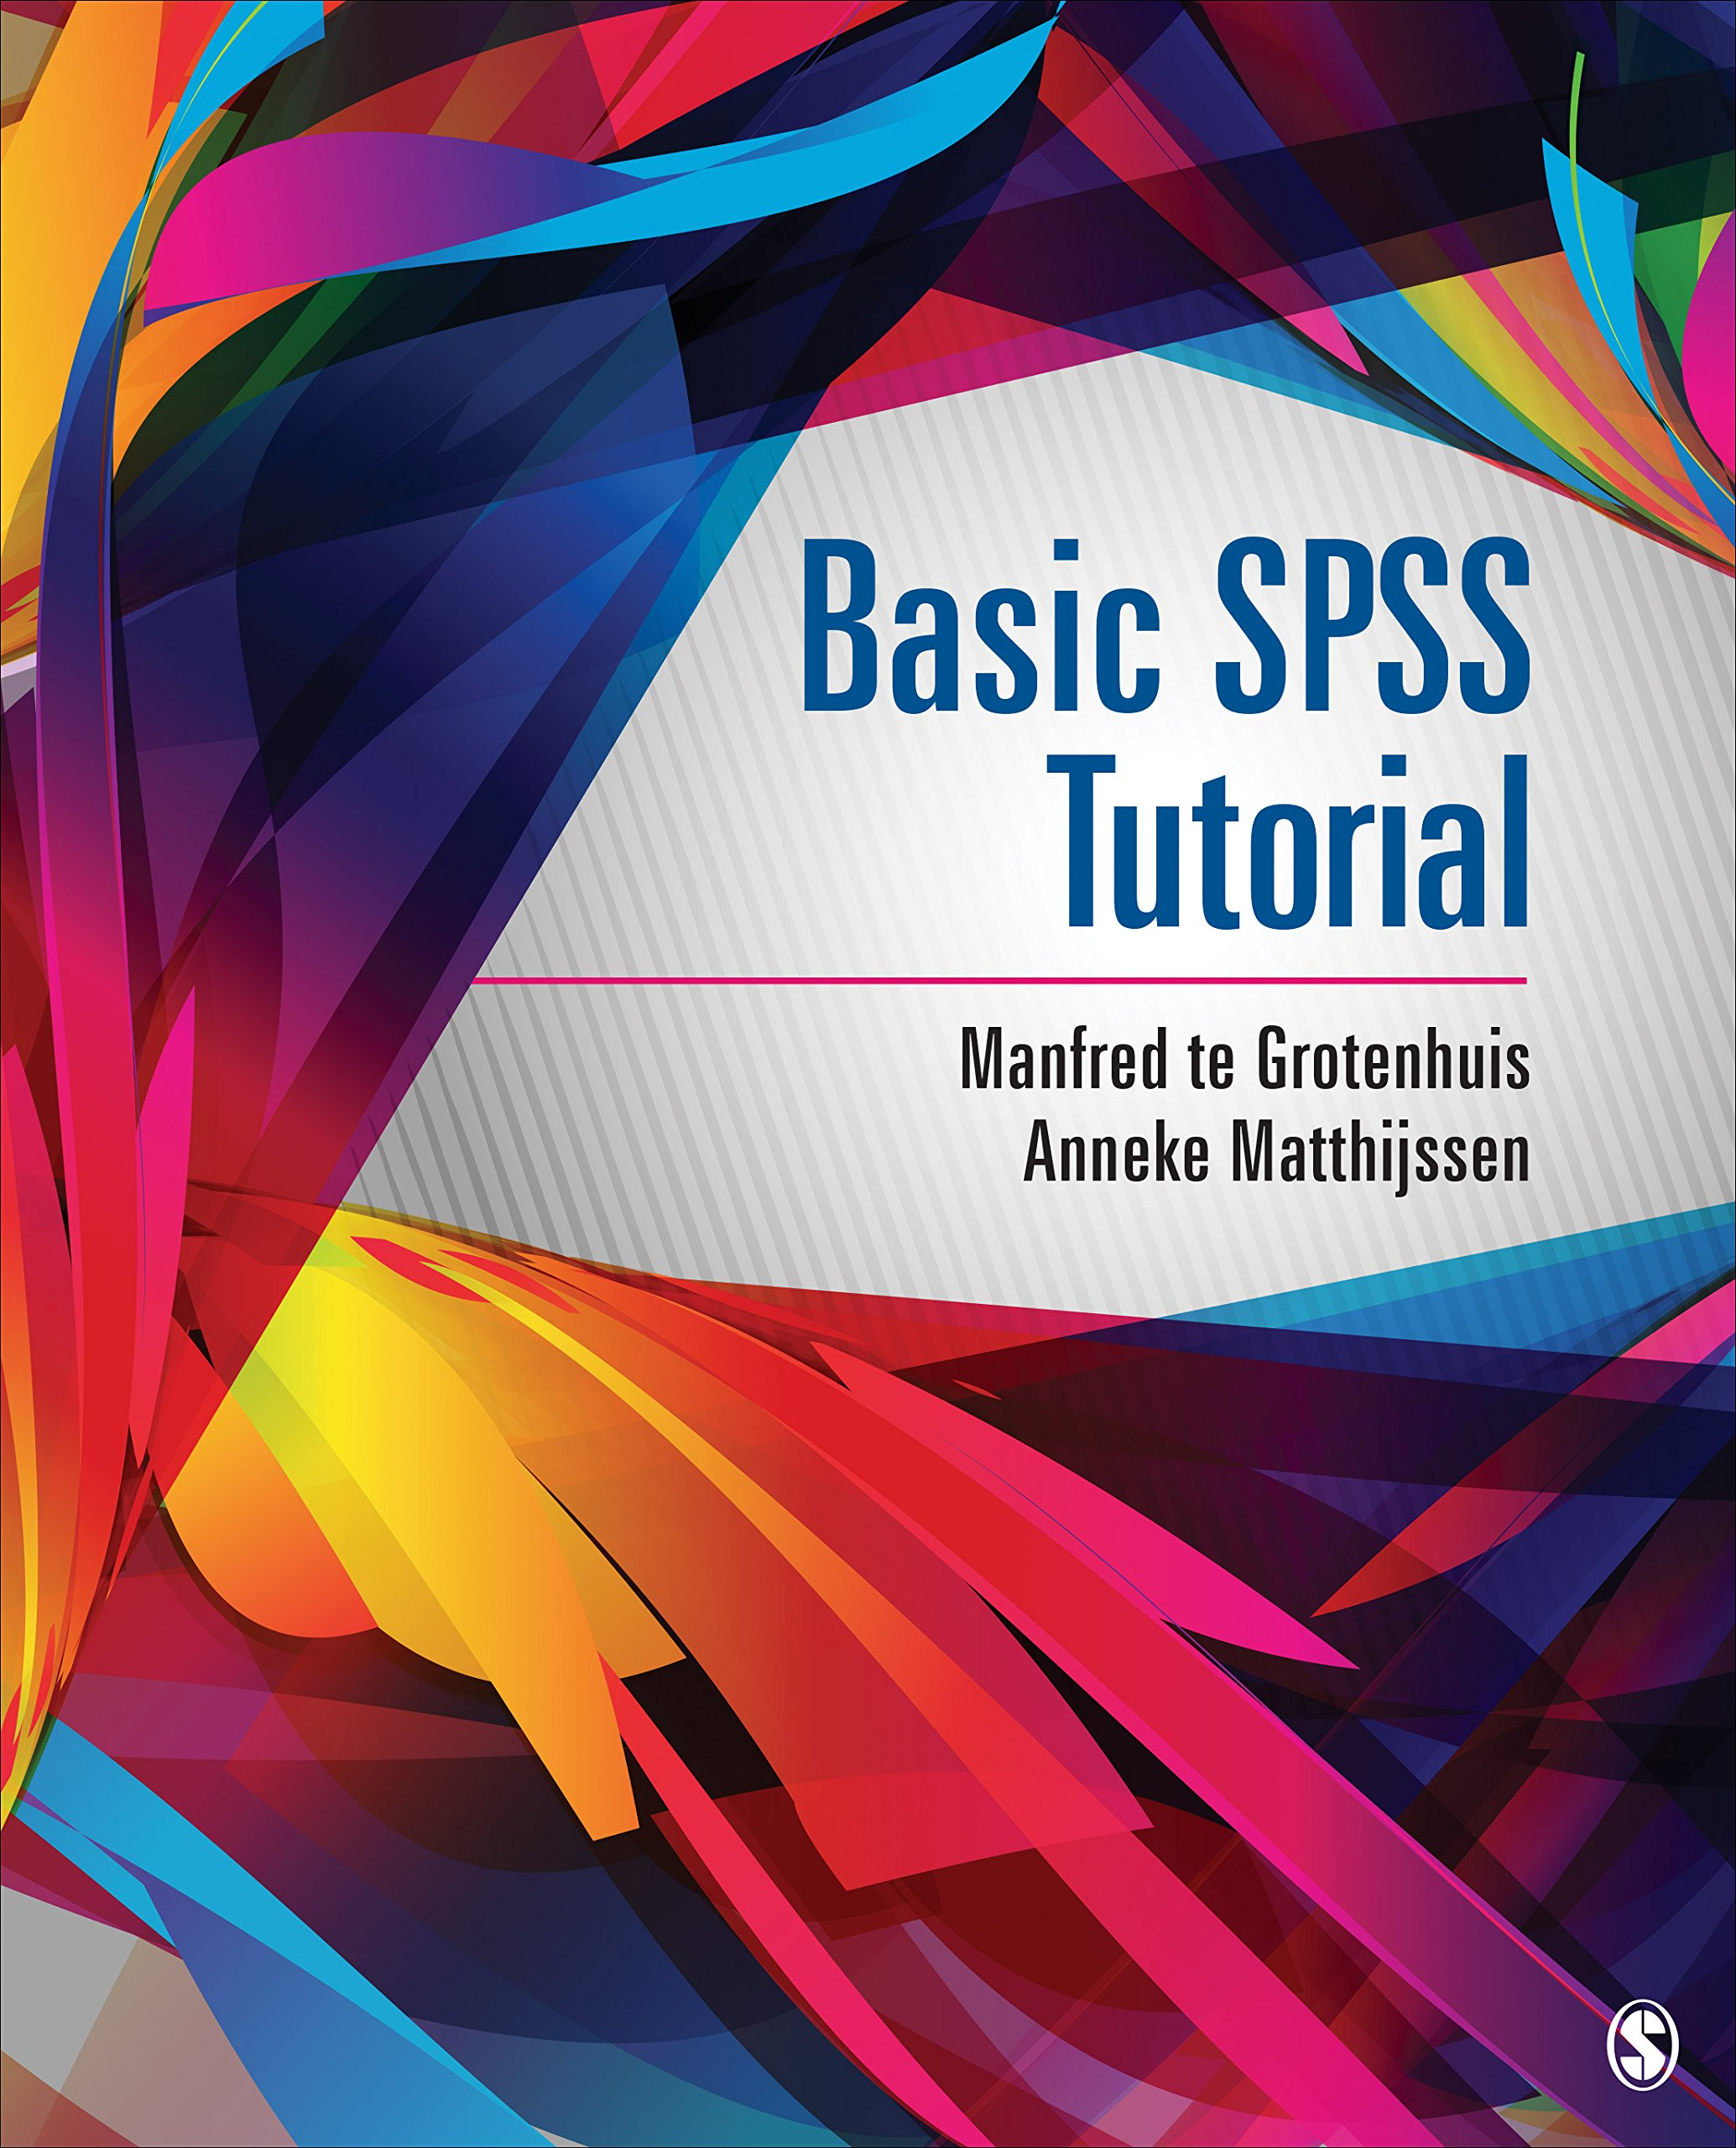 Basic SPSS Tutorial free download